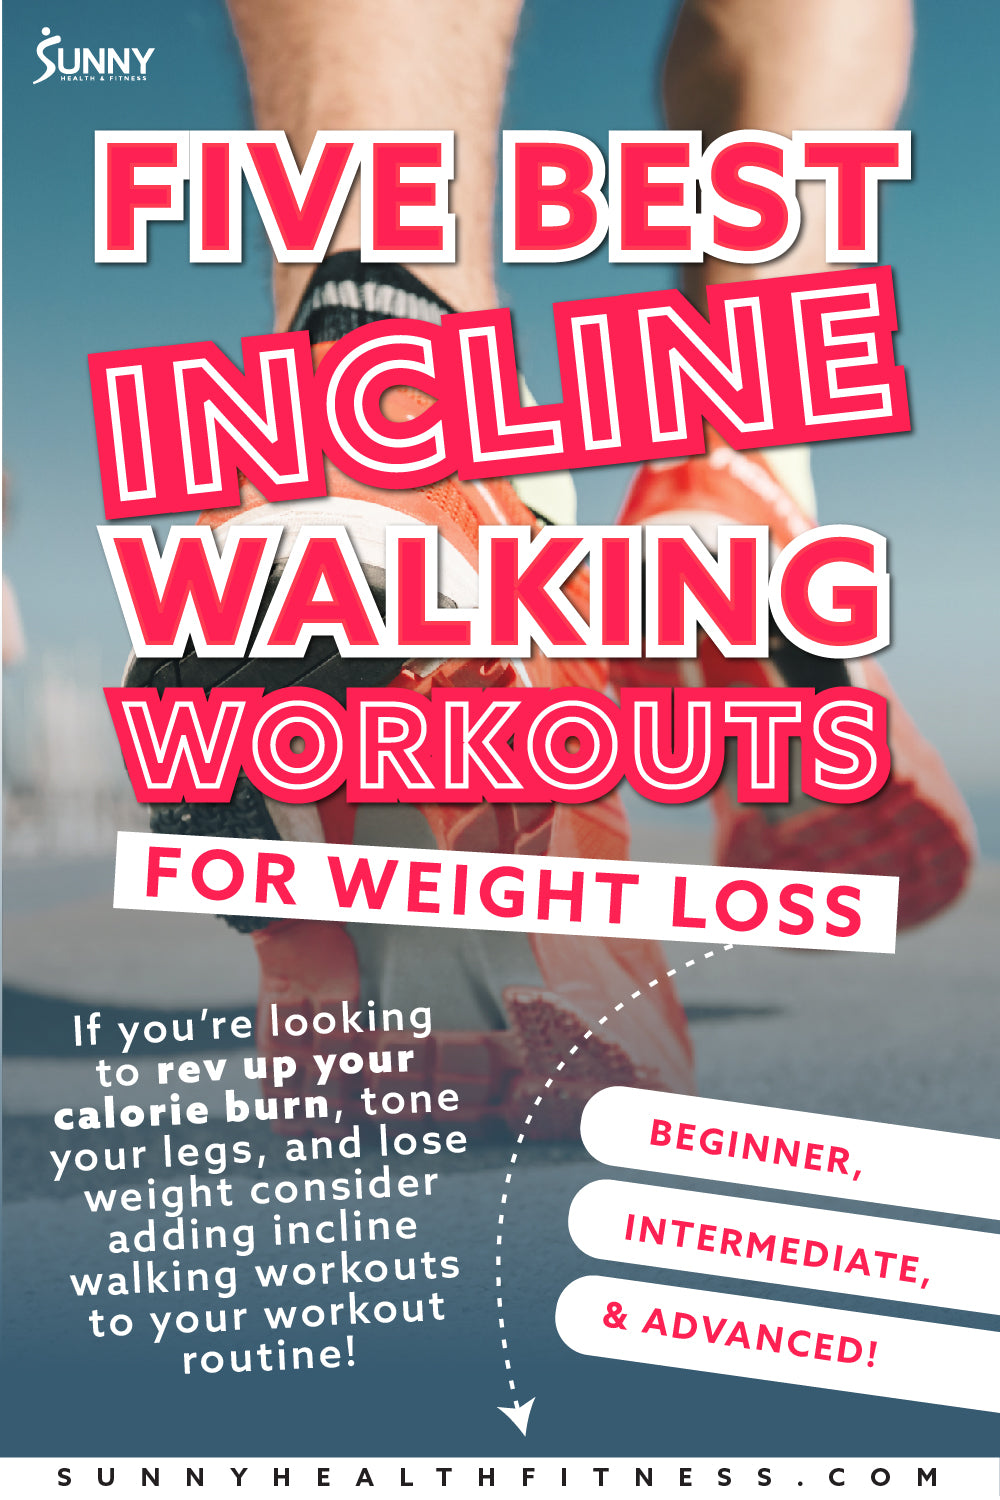 How to Lose Weight with Treadmill Incline Walking